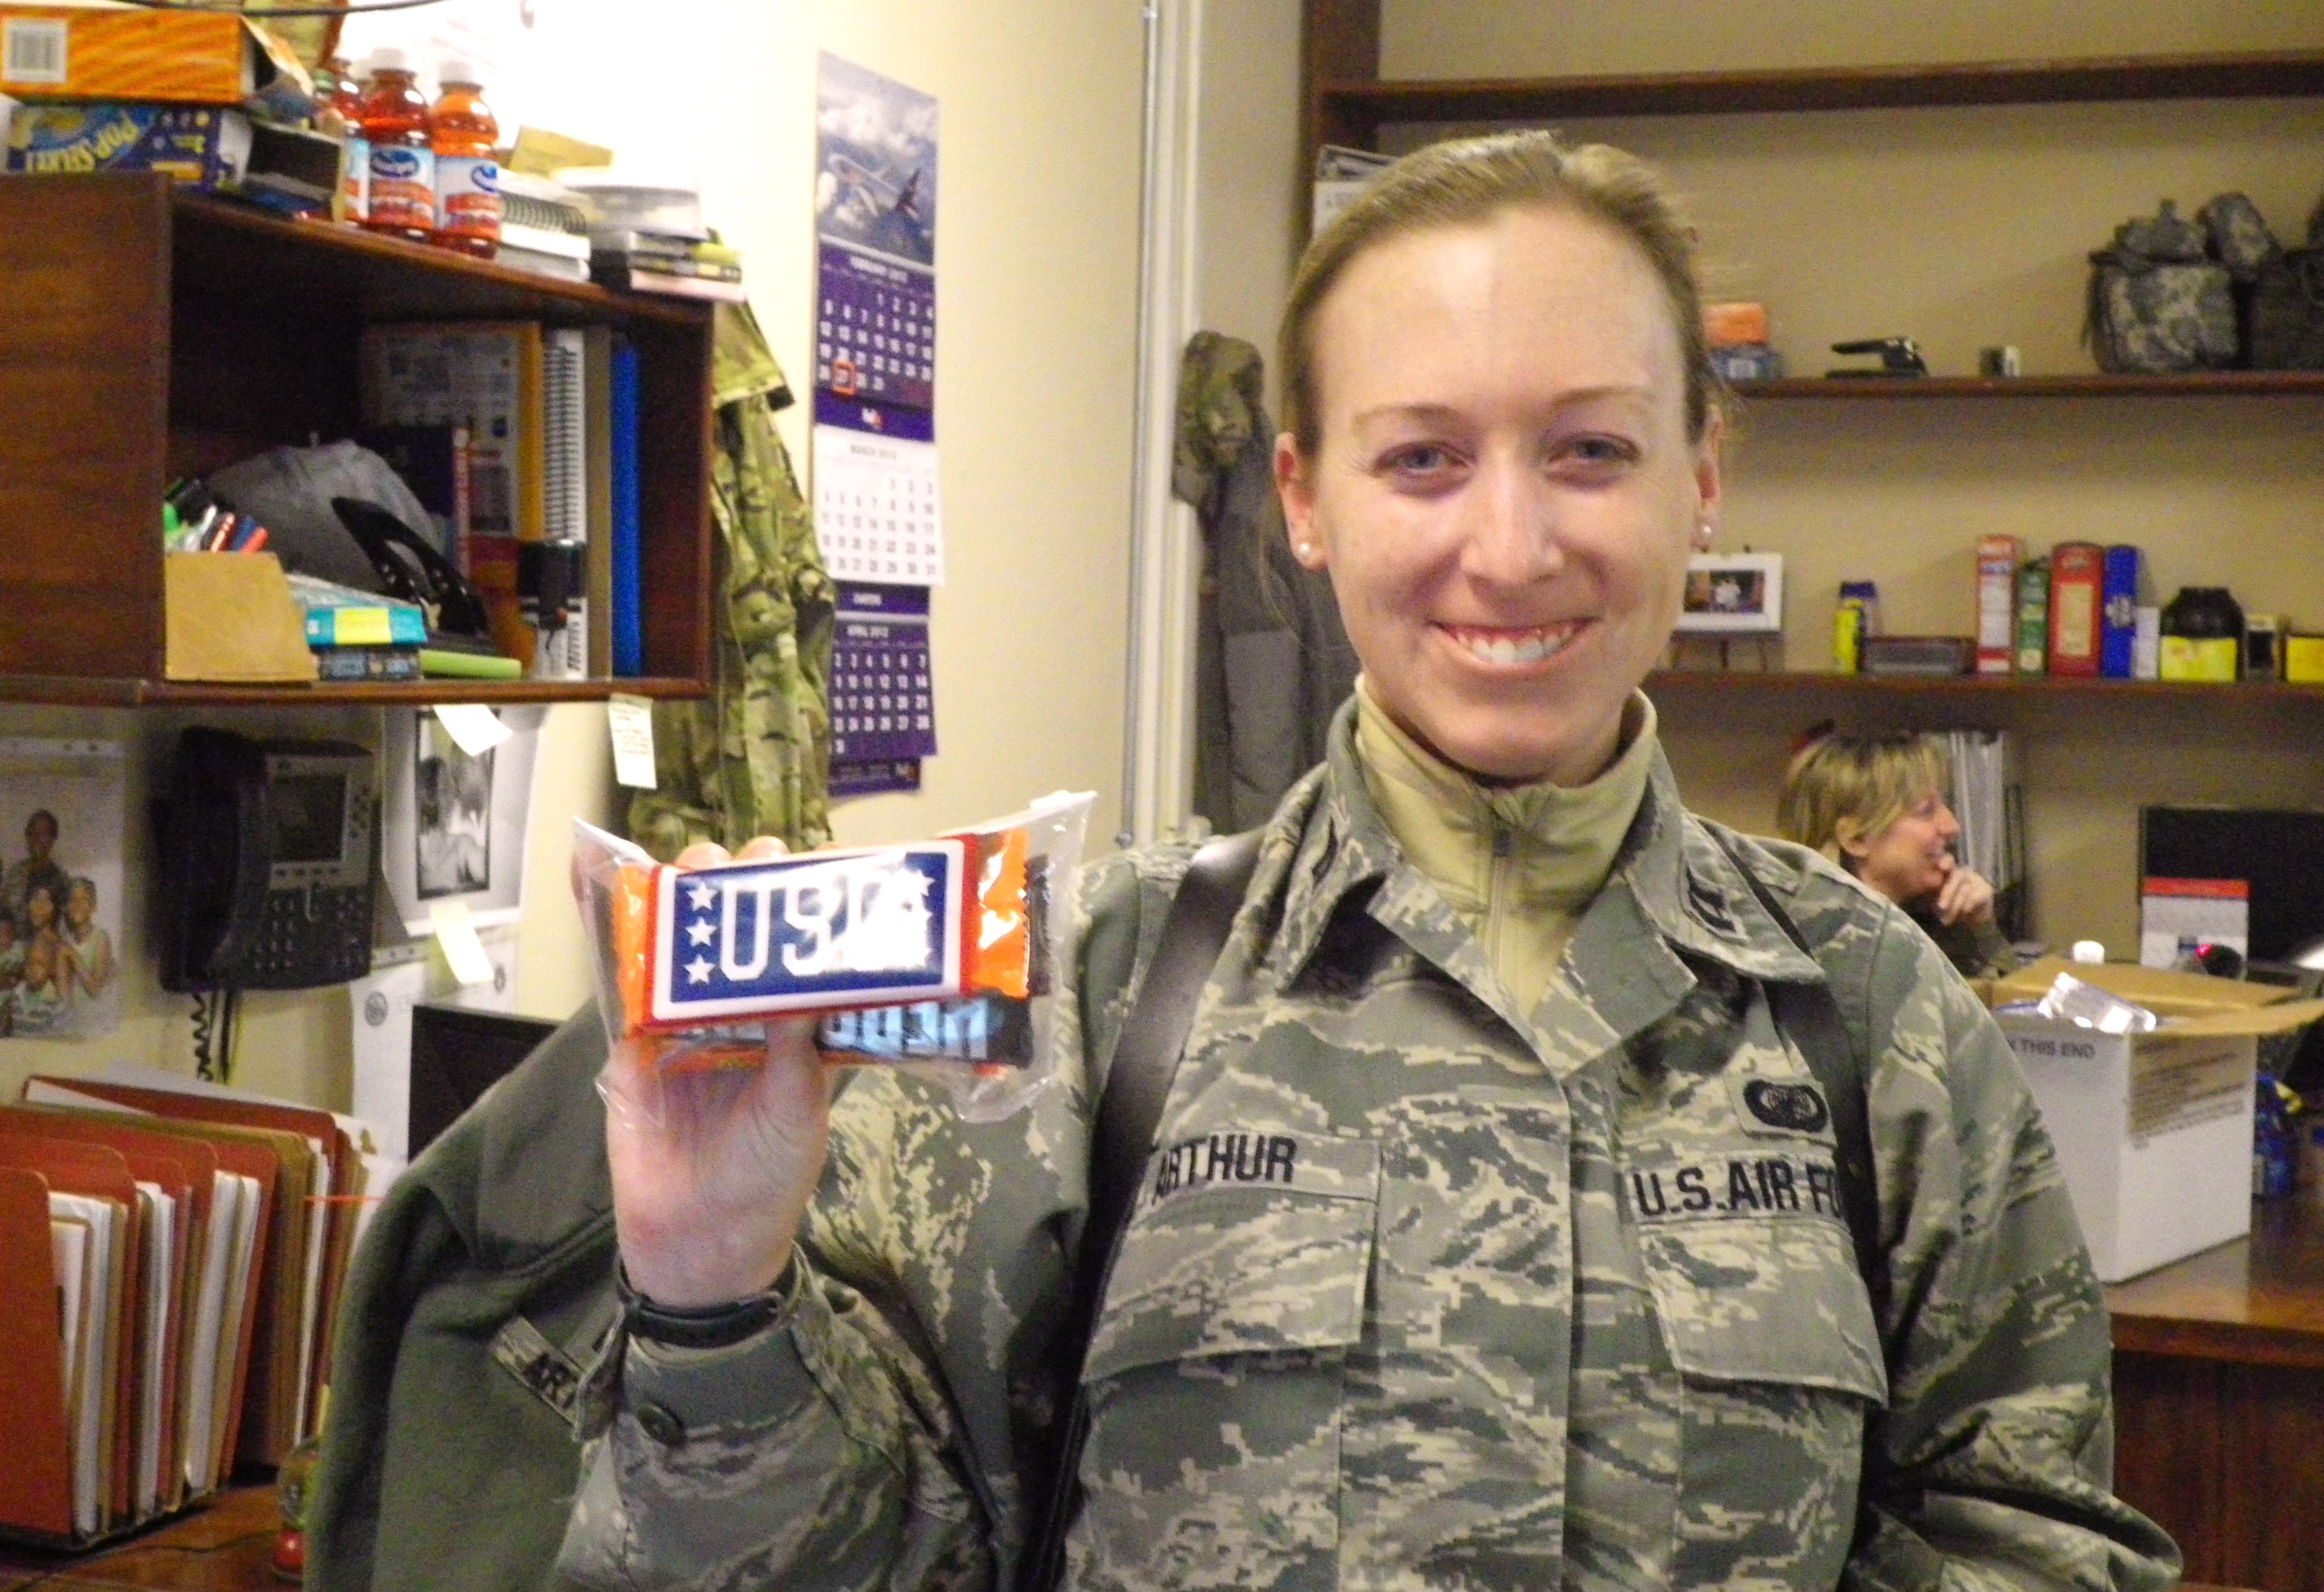 A Long Way For Surprise USO Helps Mom Continue Tradition Of Getting Unlikely Gifts To Air Force Daughter On Birthday